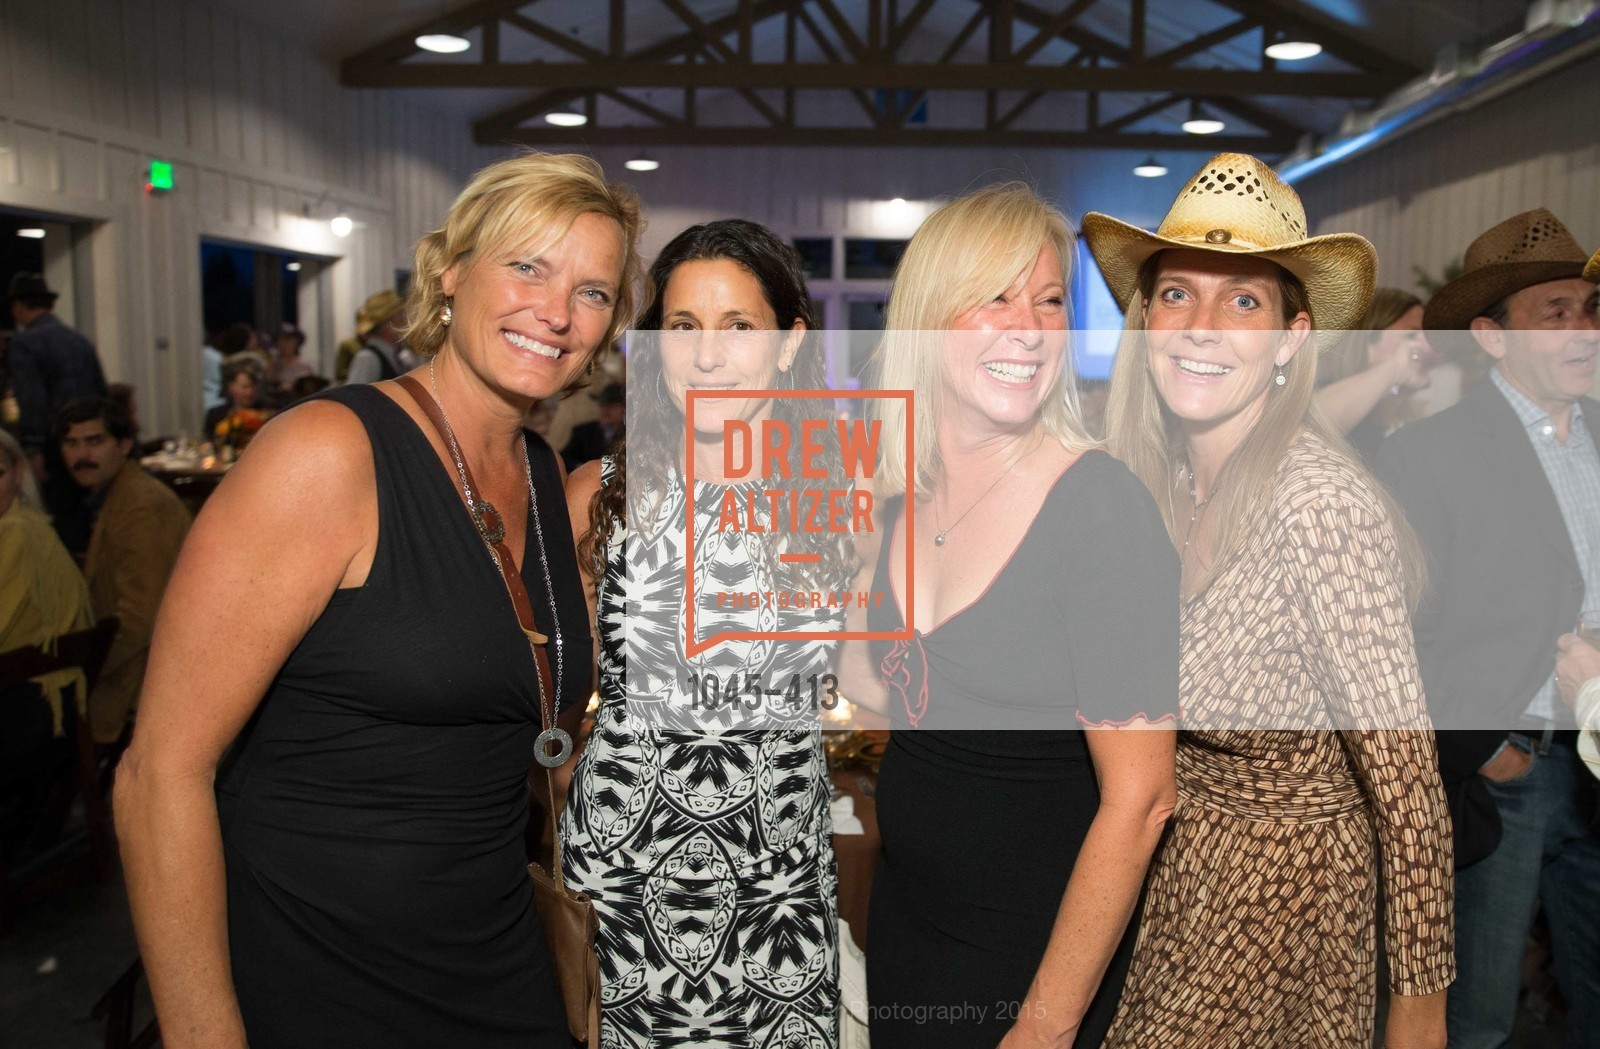 Karen McFarland, Cynthia Wornick, Teri Marshall, Michelle Rogers, A Harvest Barn Dance at Cornerstone Presented By Giant Steps Therapeutic Equestrian Center, Cornerstone Sonoma. 23570 Arnold Dr, October 24th, 2015,Drew Altizer, Drew Altizer Photography, full-service agency, private events, San Francisco photographer, photographer california